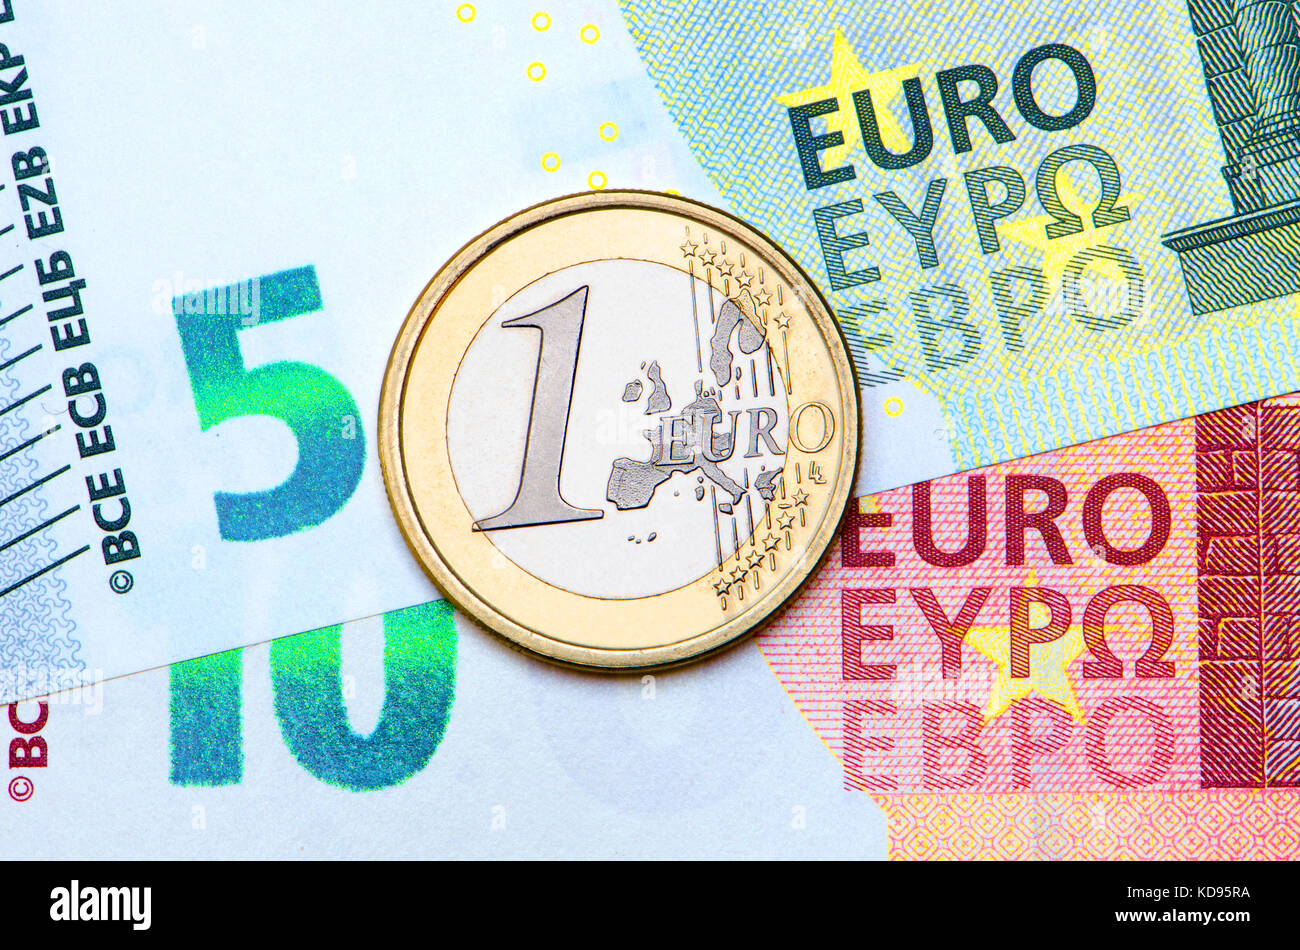 1 Euro coin on 5 and 10 Euro note - Stock Image